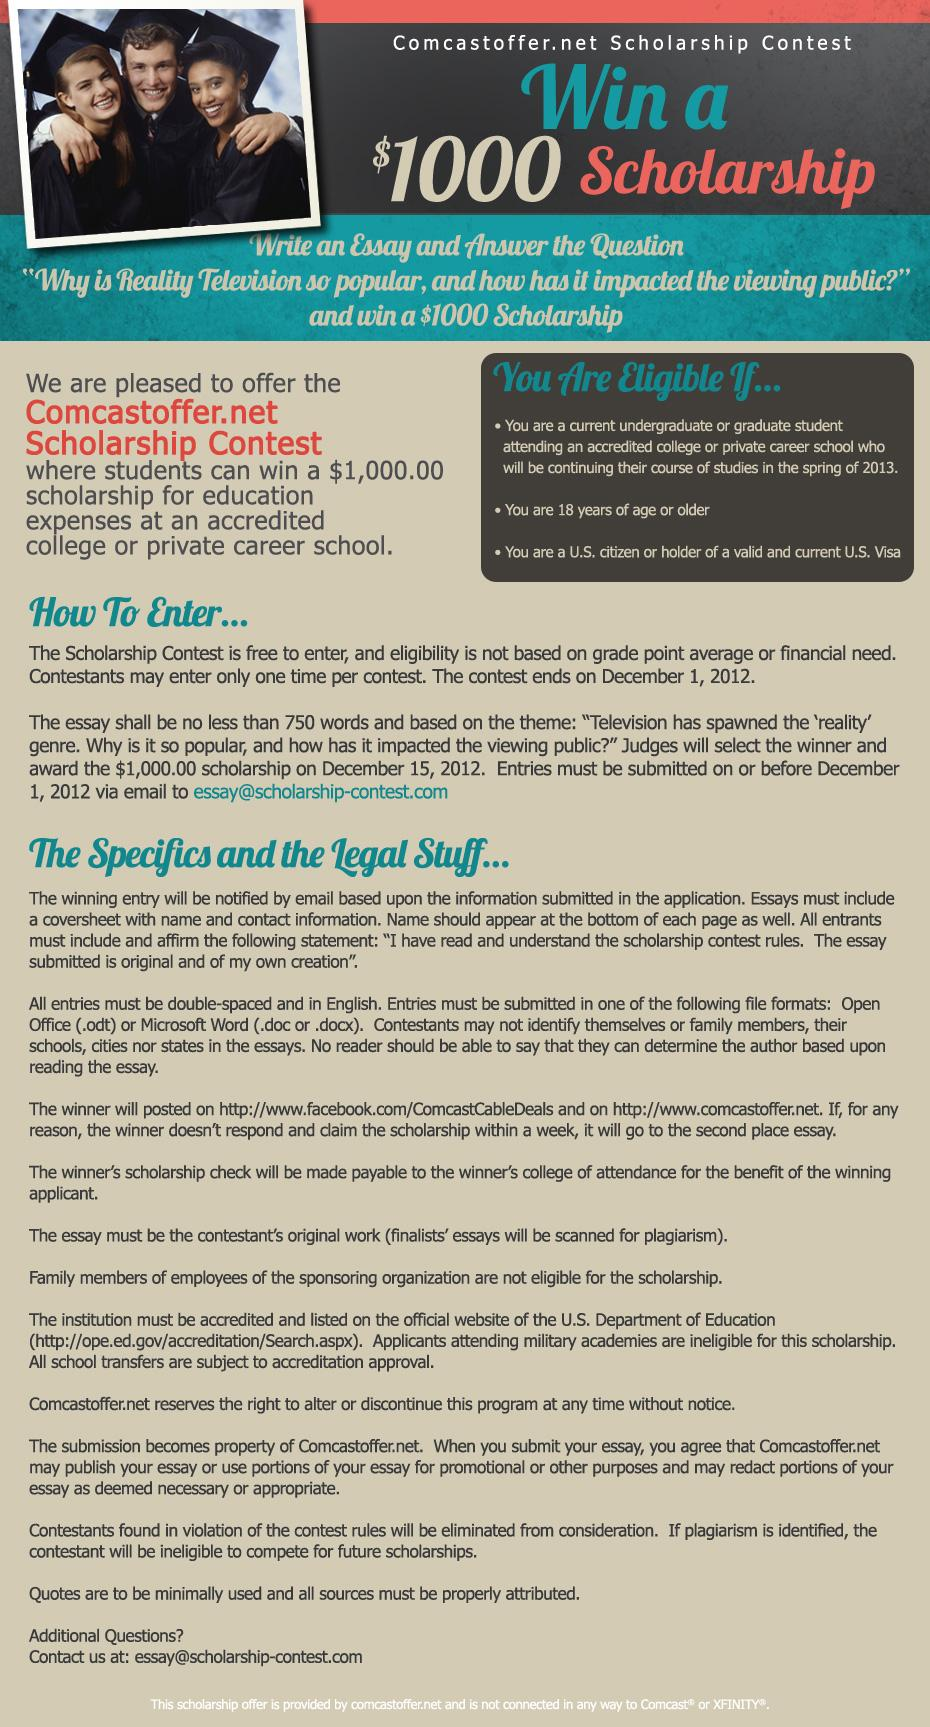 ComcastOffer.net $1000 Scholarship: The Impact of Reality TV